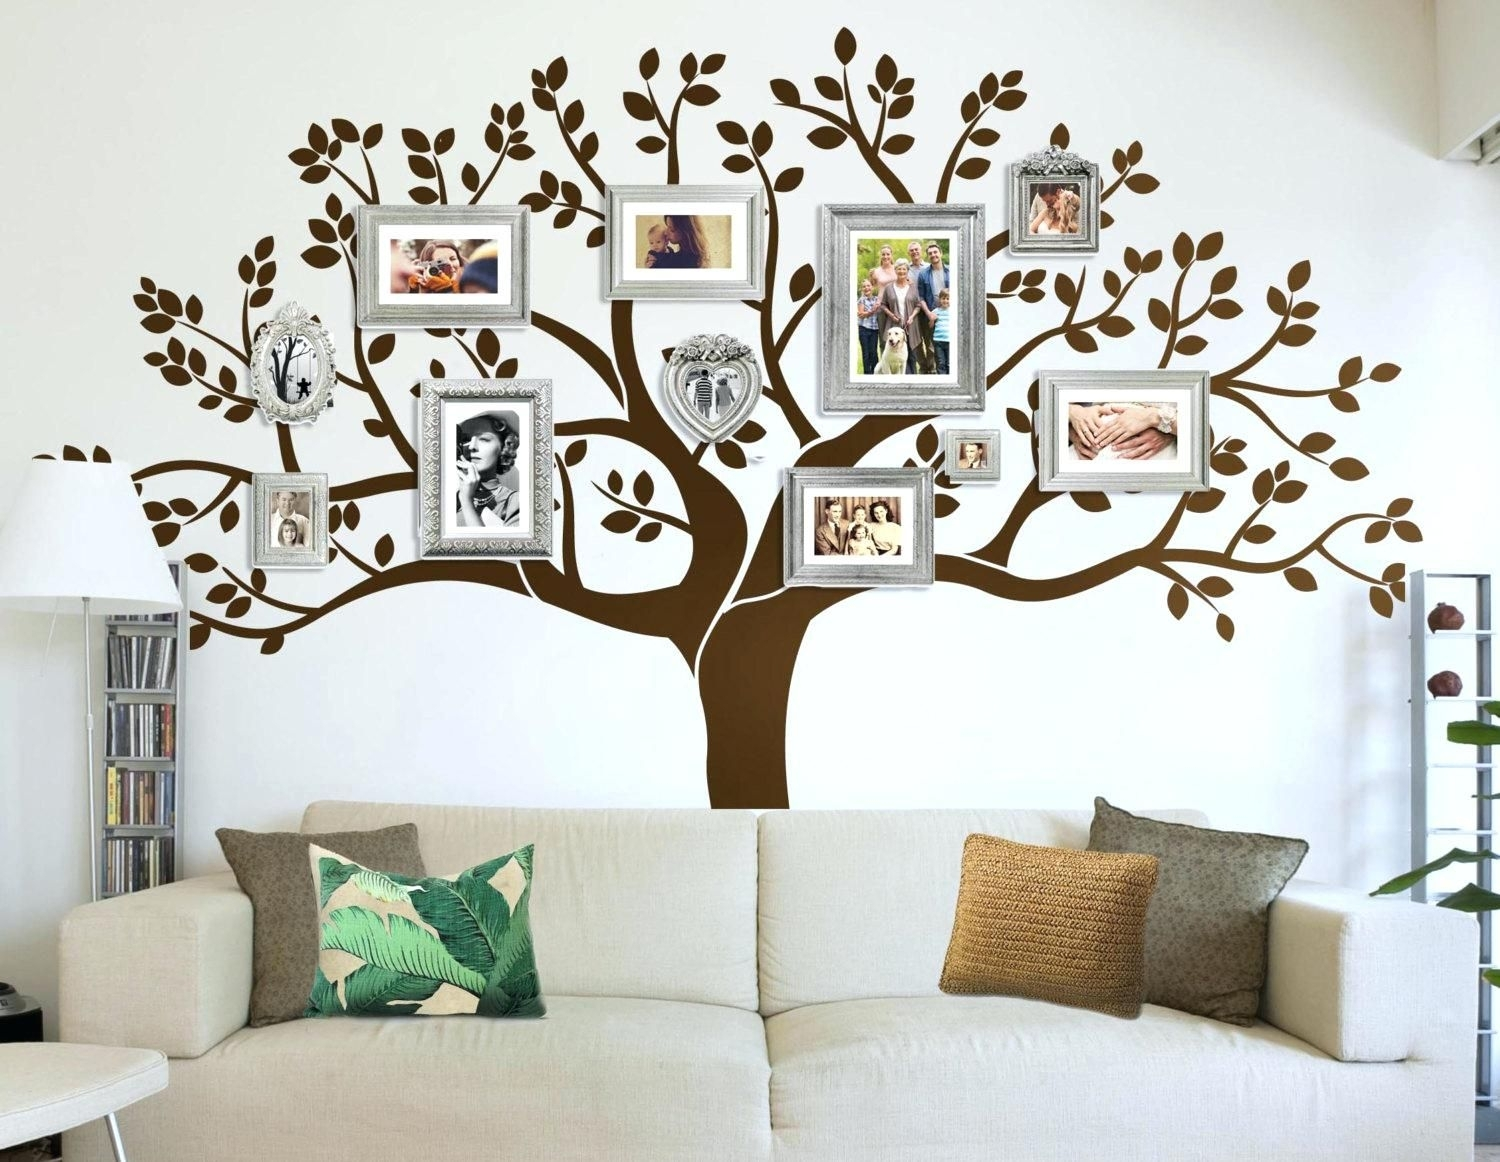 Stunning Large Wood Tree Wall Decor Art On Designs Decoration Diy With Most Current Wall Tree Art (Gallery 17 of 20)